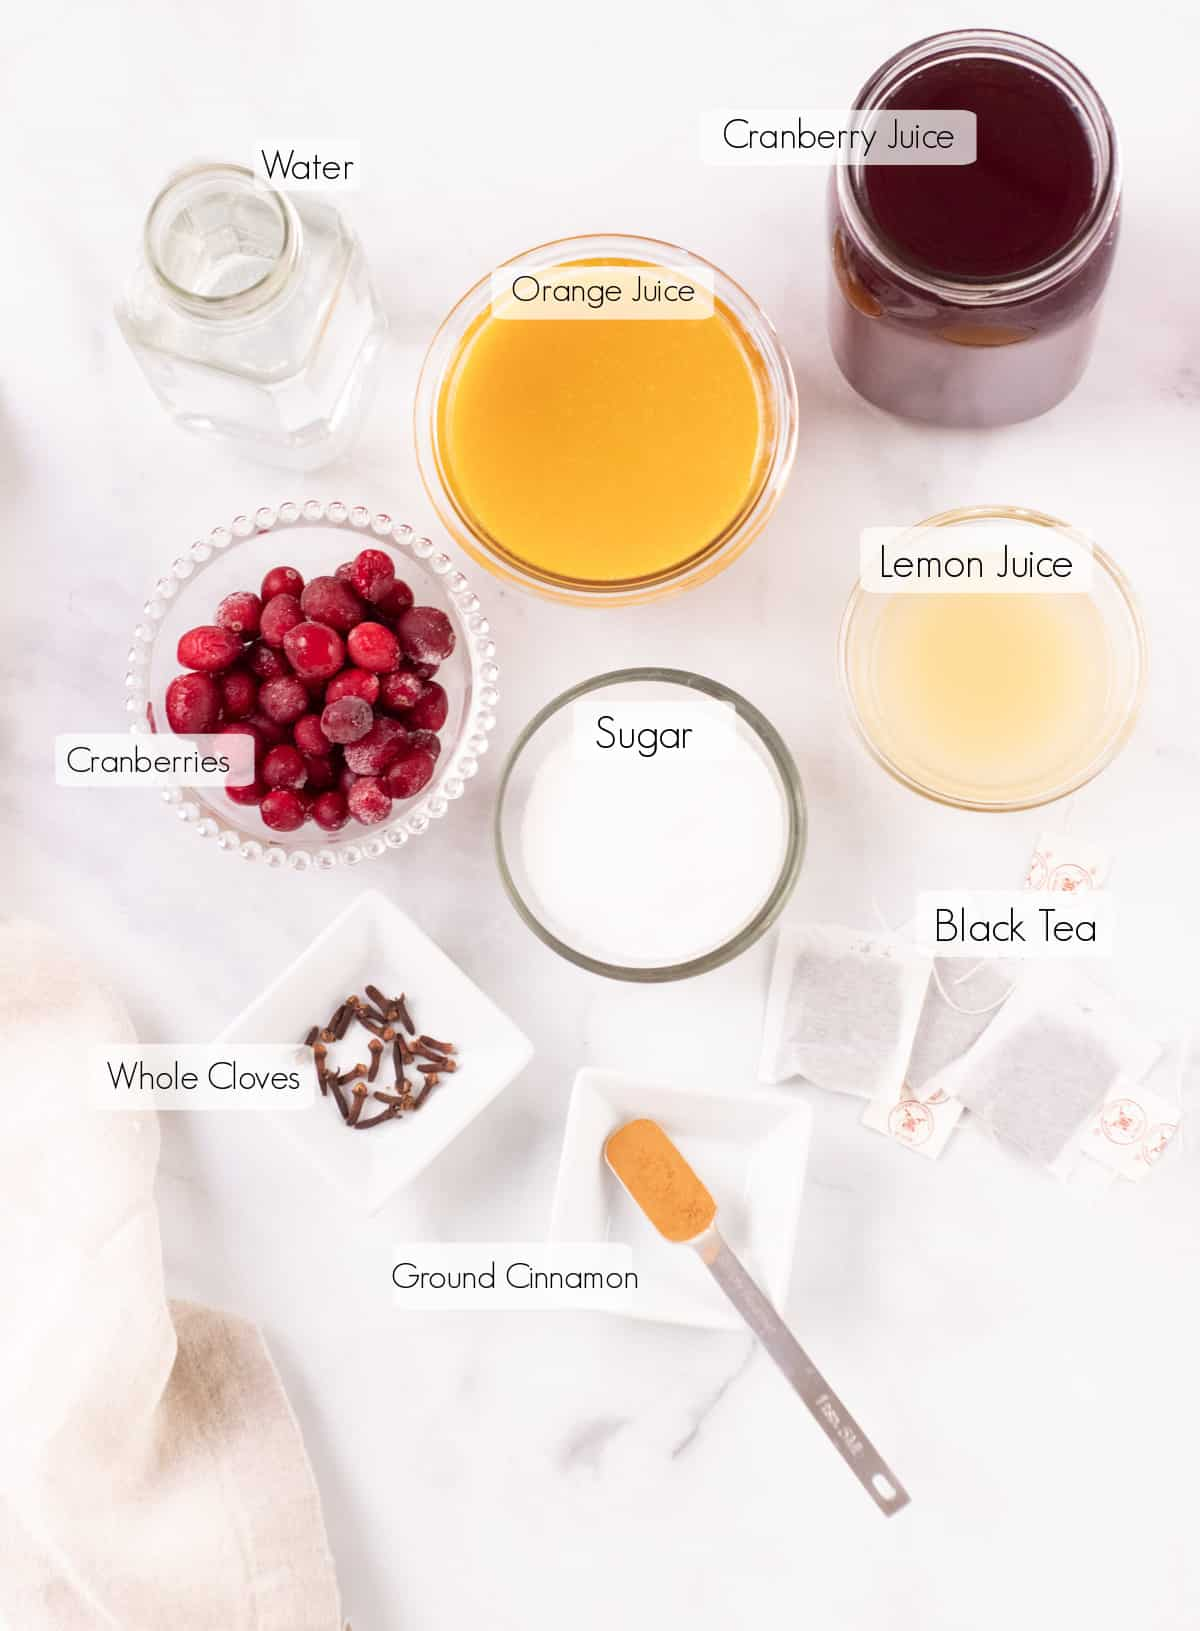 Labeled ingredients to make orange cranberry tea concentrate.